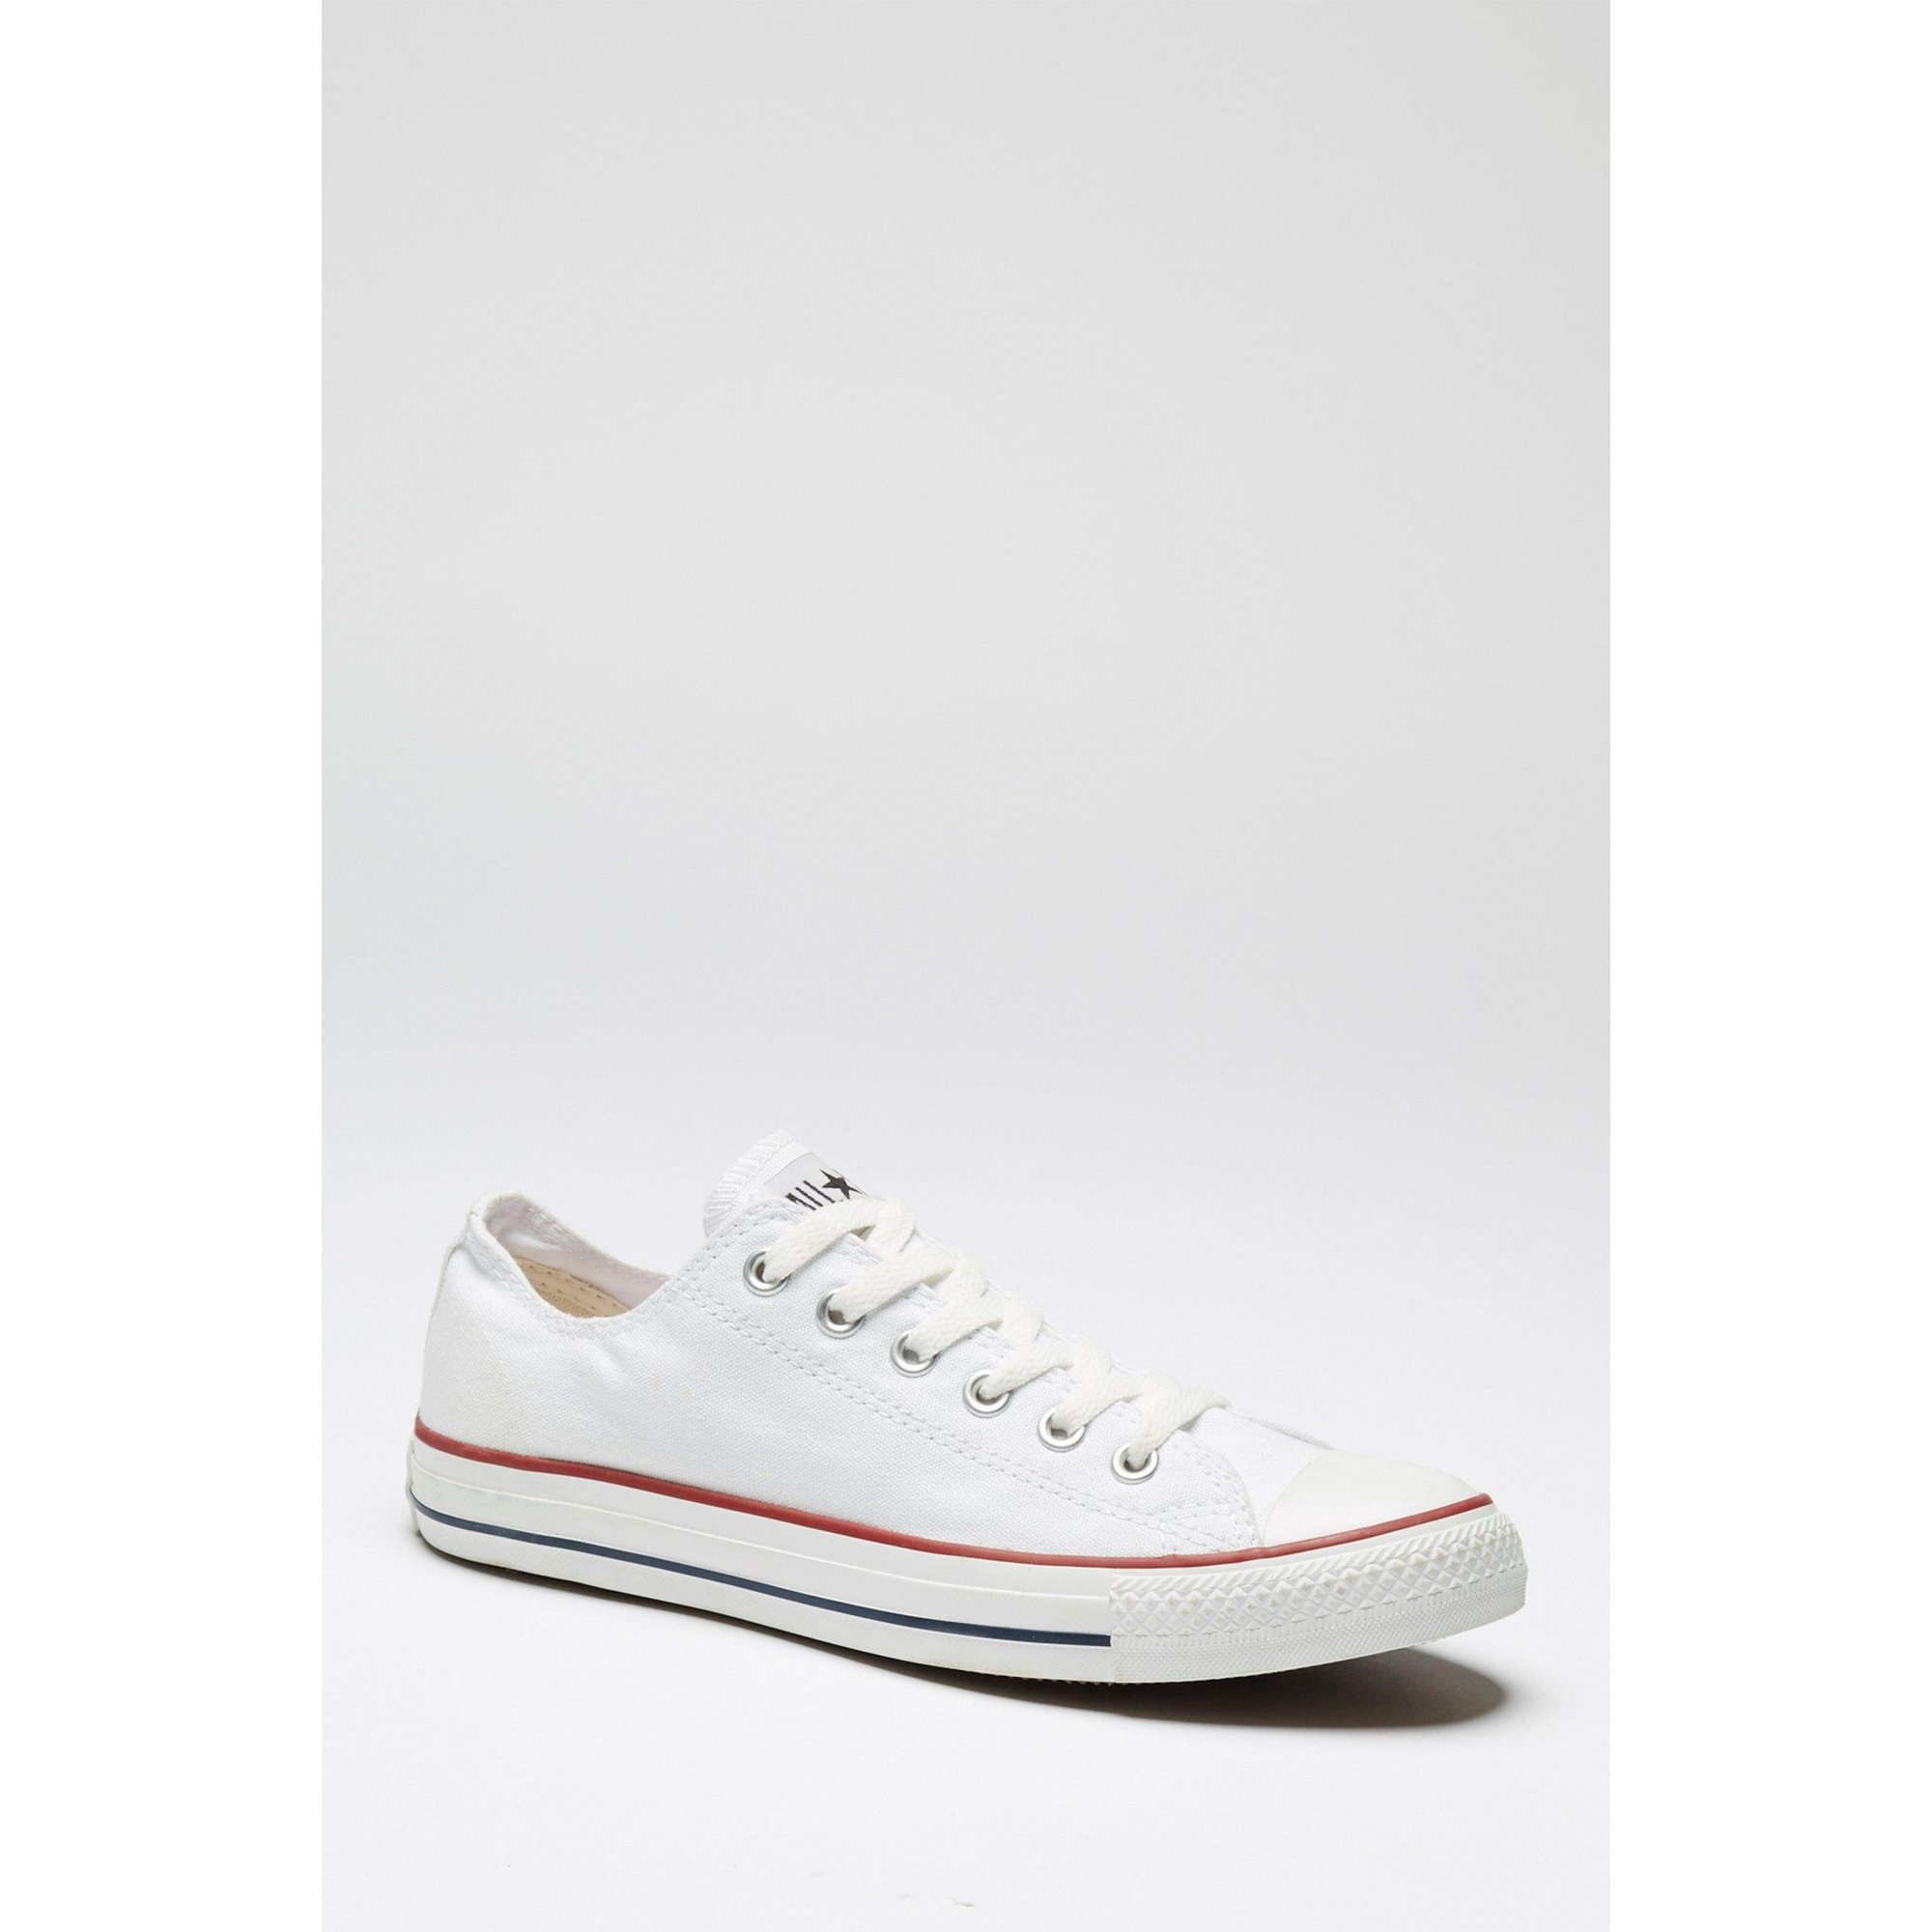 Image of Converse All Star Ox Low Trainers (Sizes 7-11)